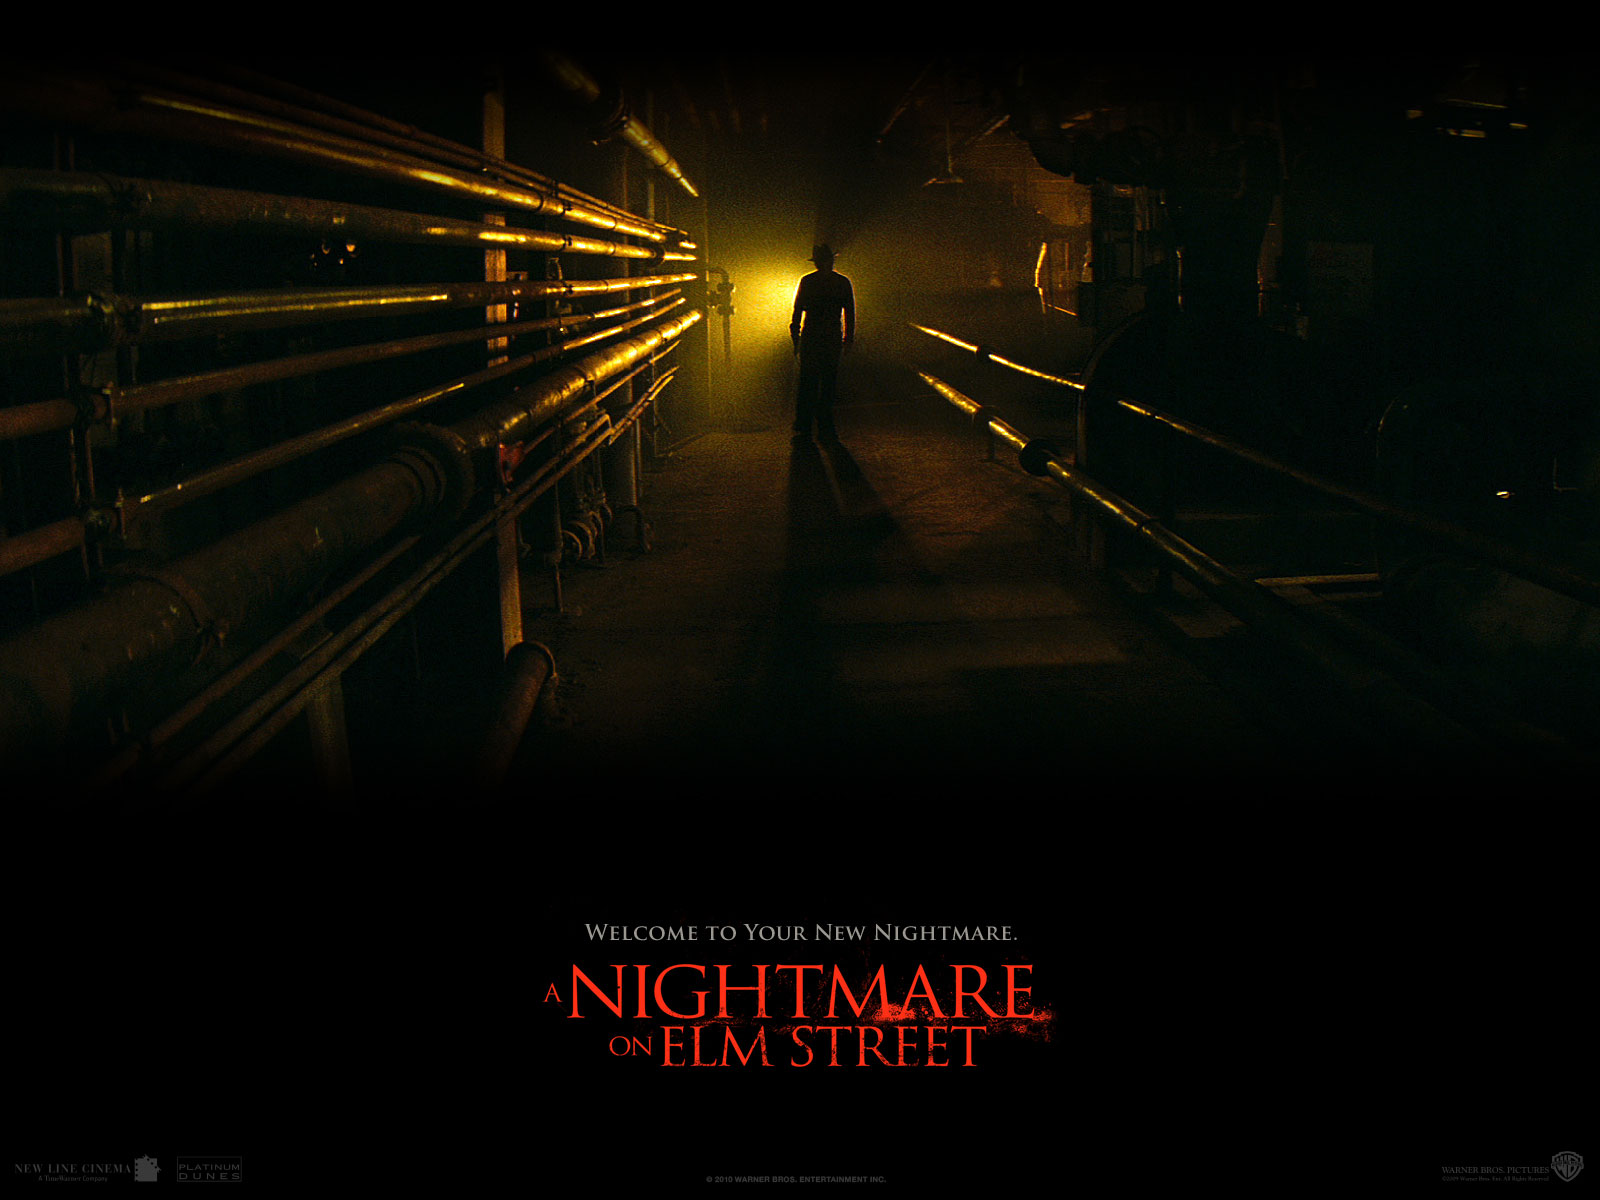 nightmare on elm street A nightmare on elm street - 1984 several people are hunted by a cruel serial killer who kills his victims in their dreams while the survivors are trying to find the reason for being.